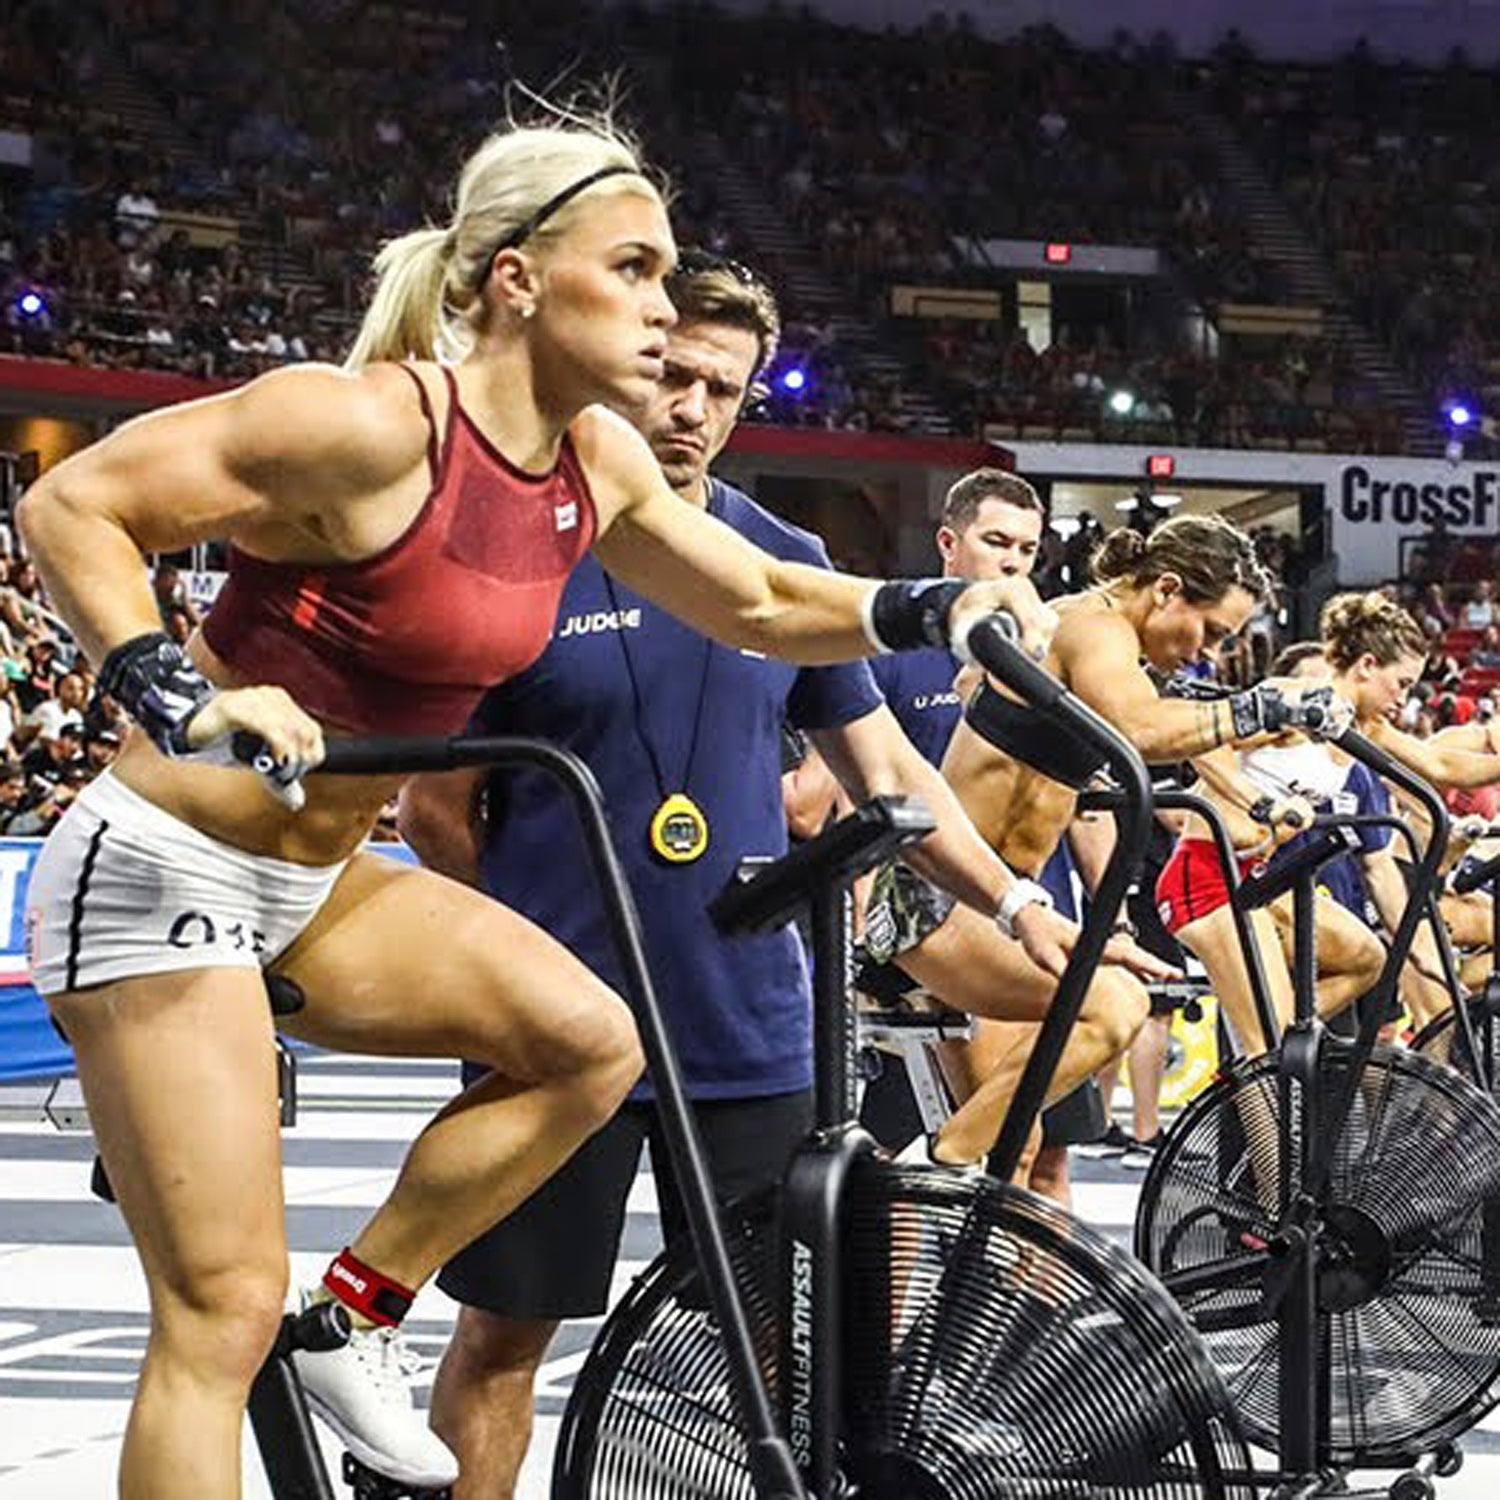 CrossFit Announces Games Are Changing To Online Format